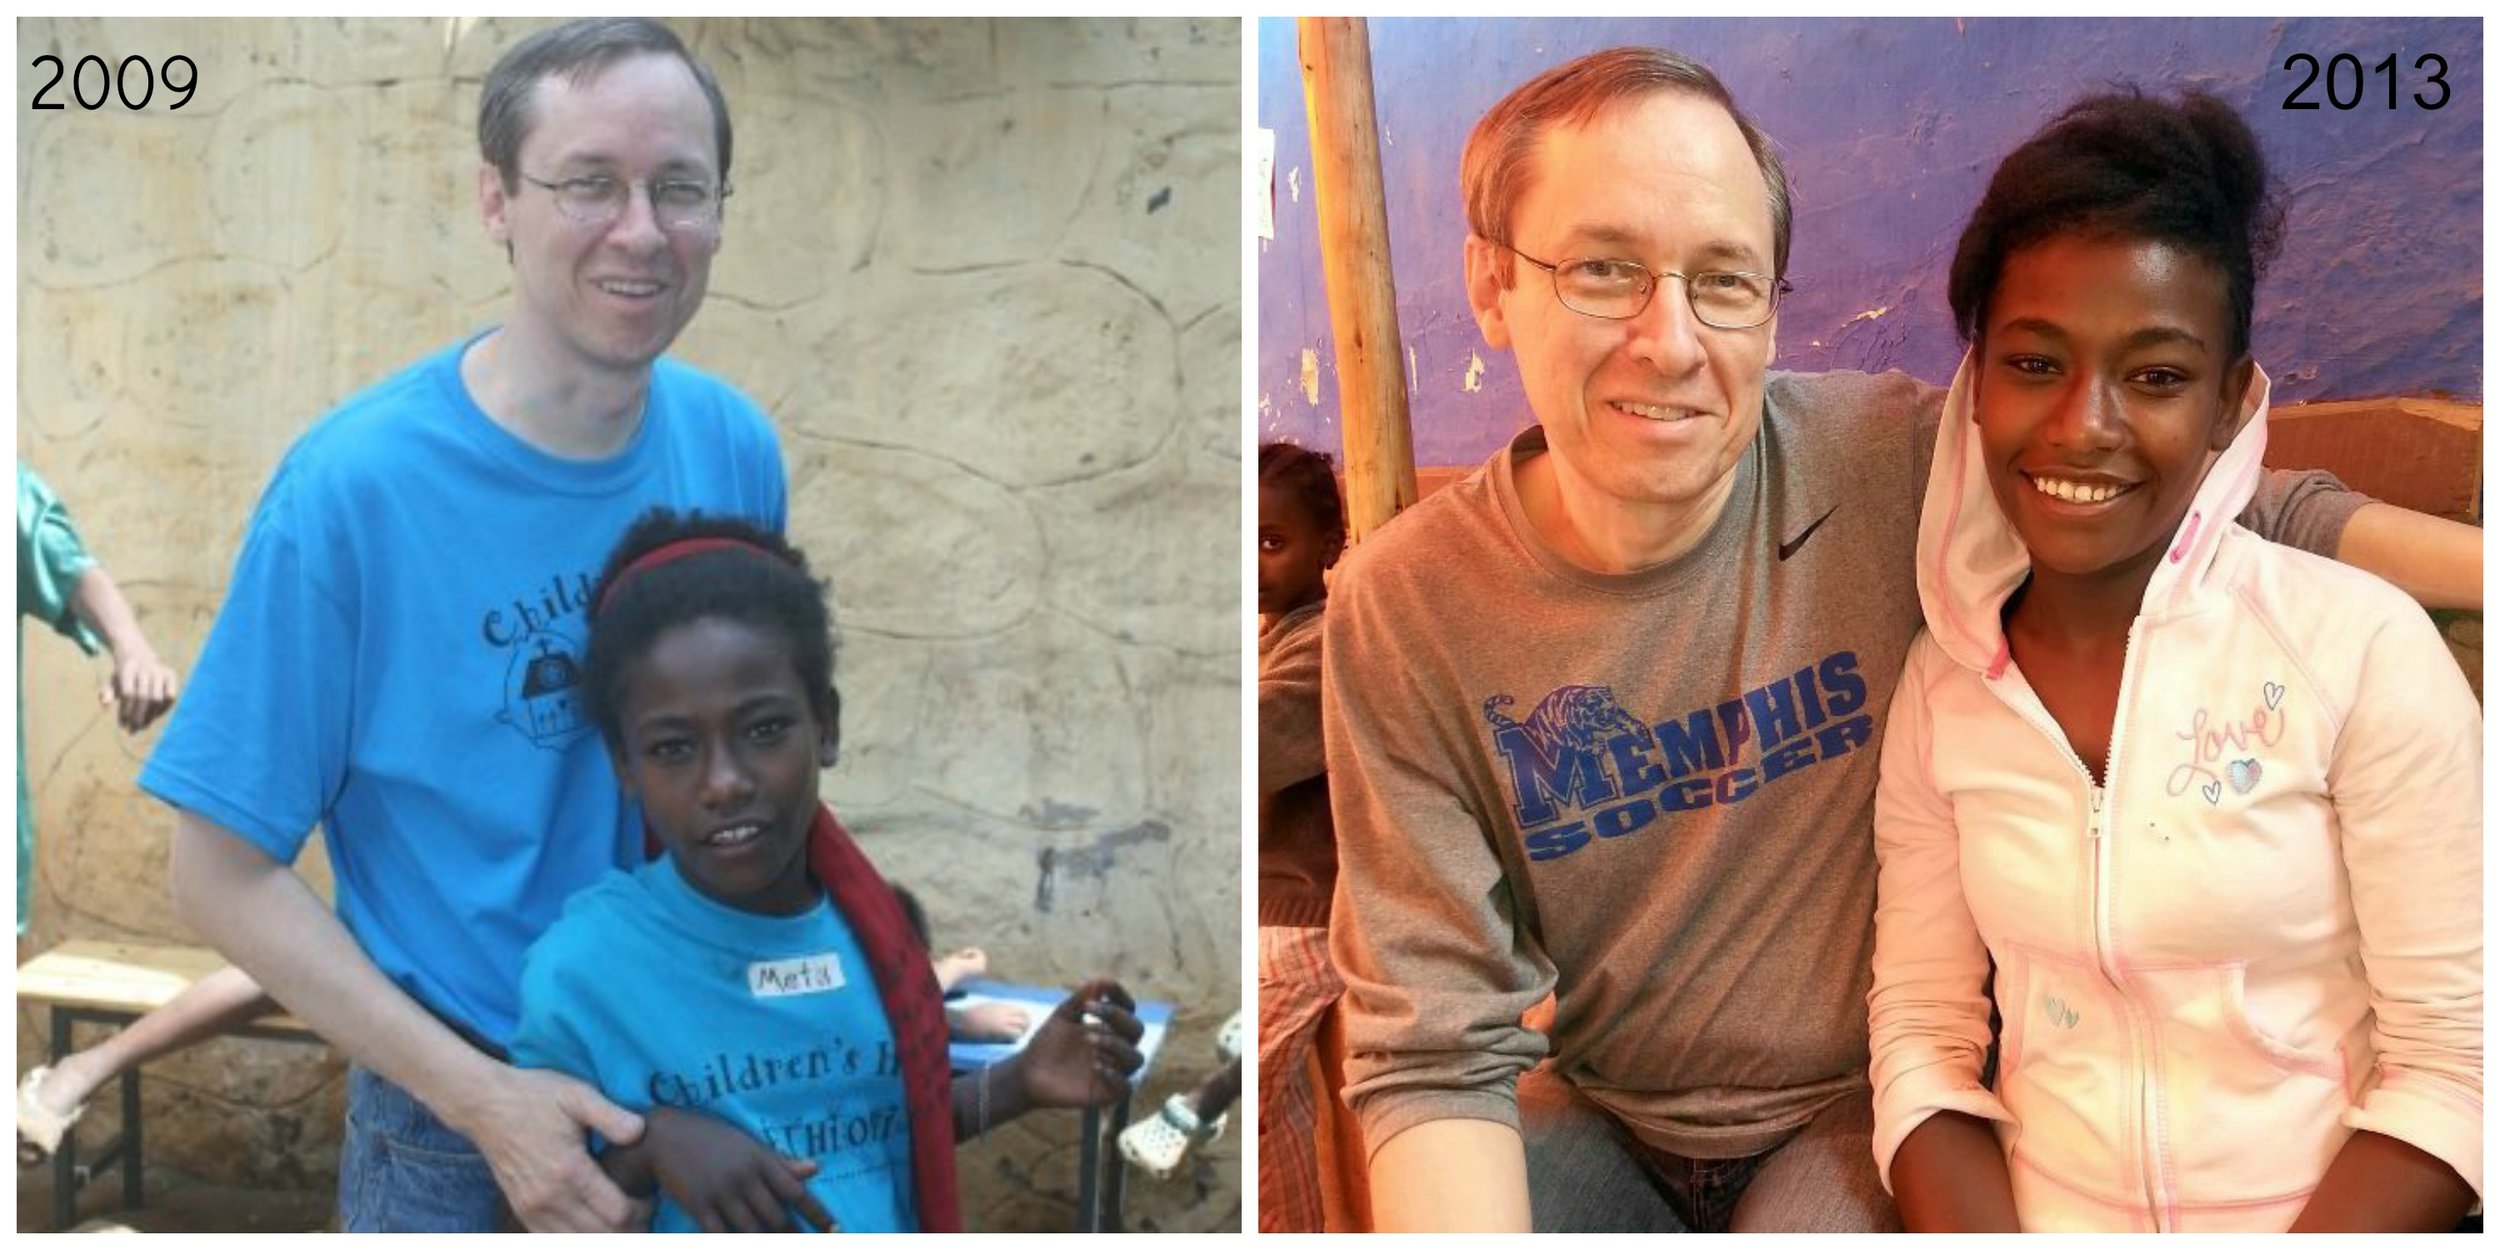 Here's Metu and me in 2009 and then again in March of this year.